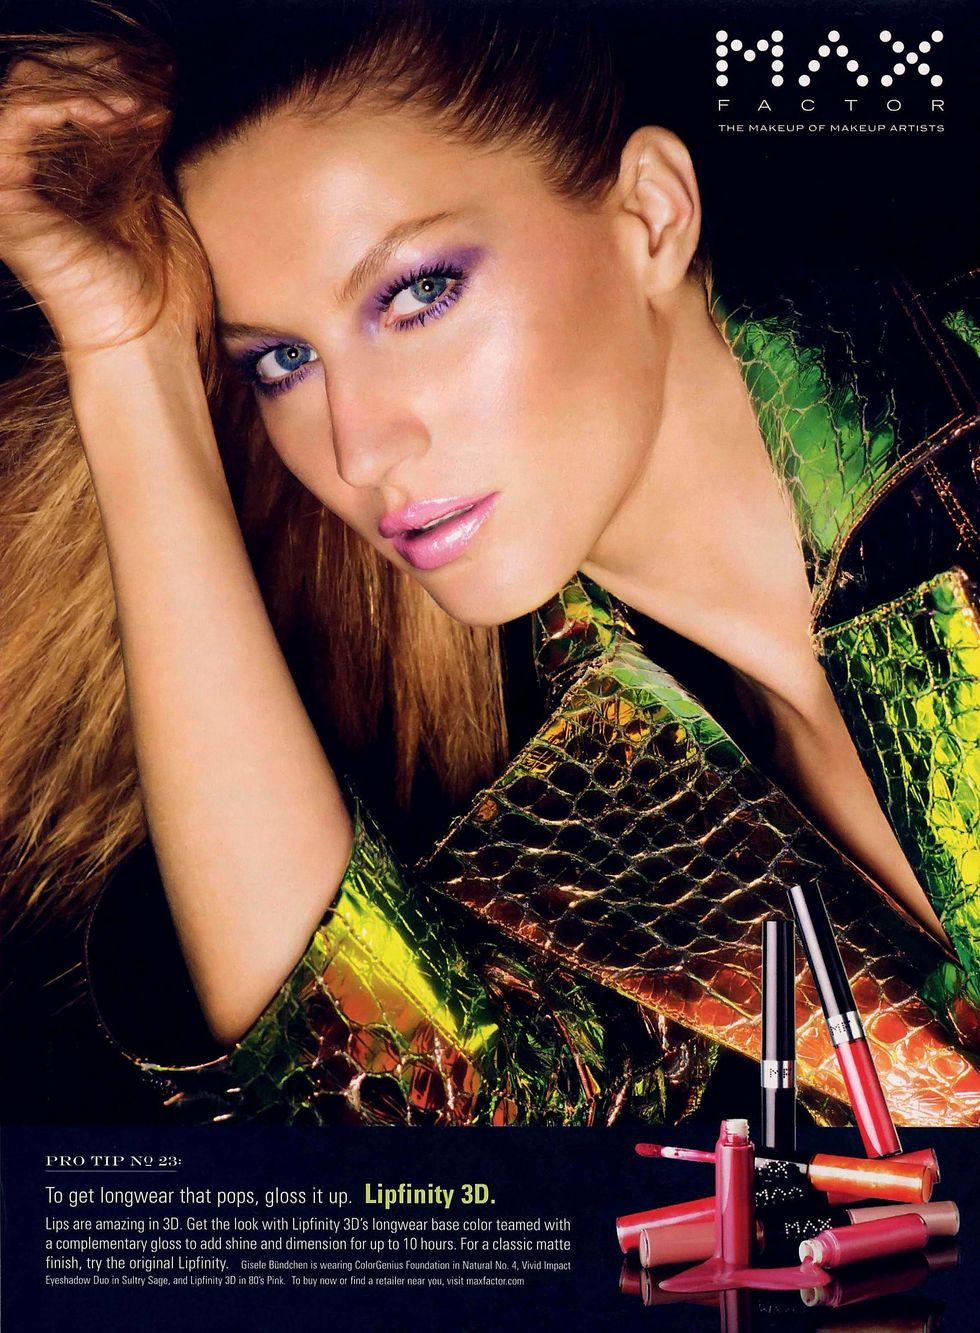 gisele-bundchen-max-factor-2009-ads-01